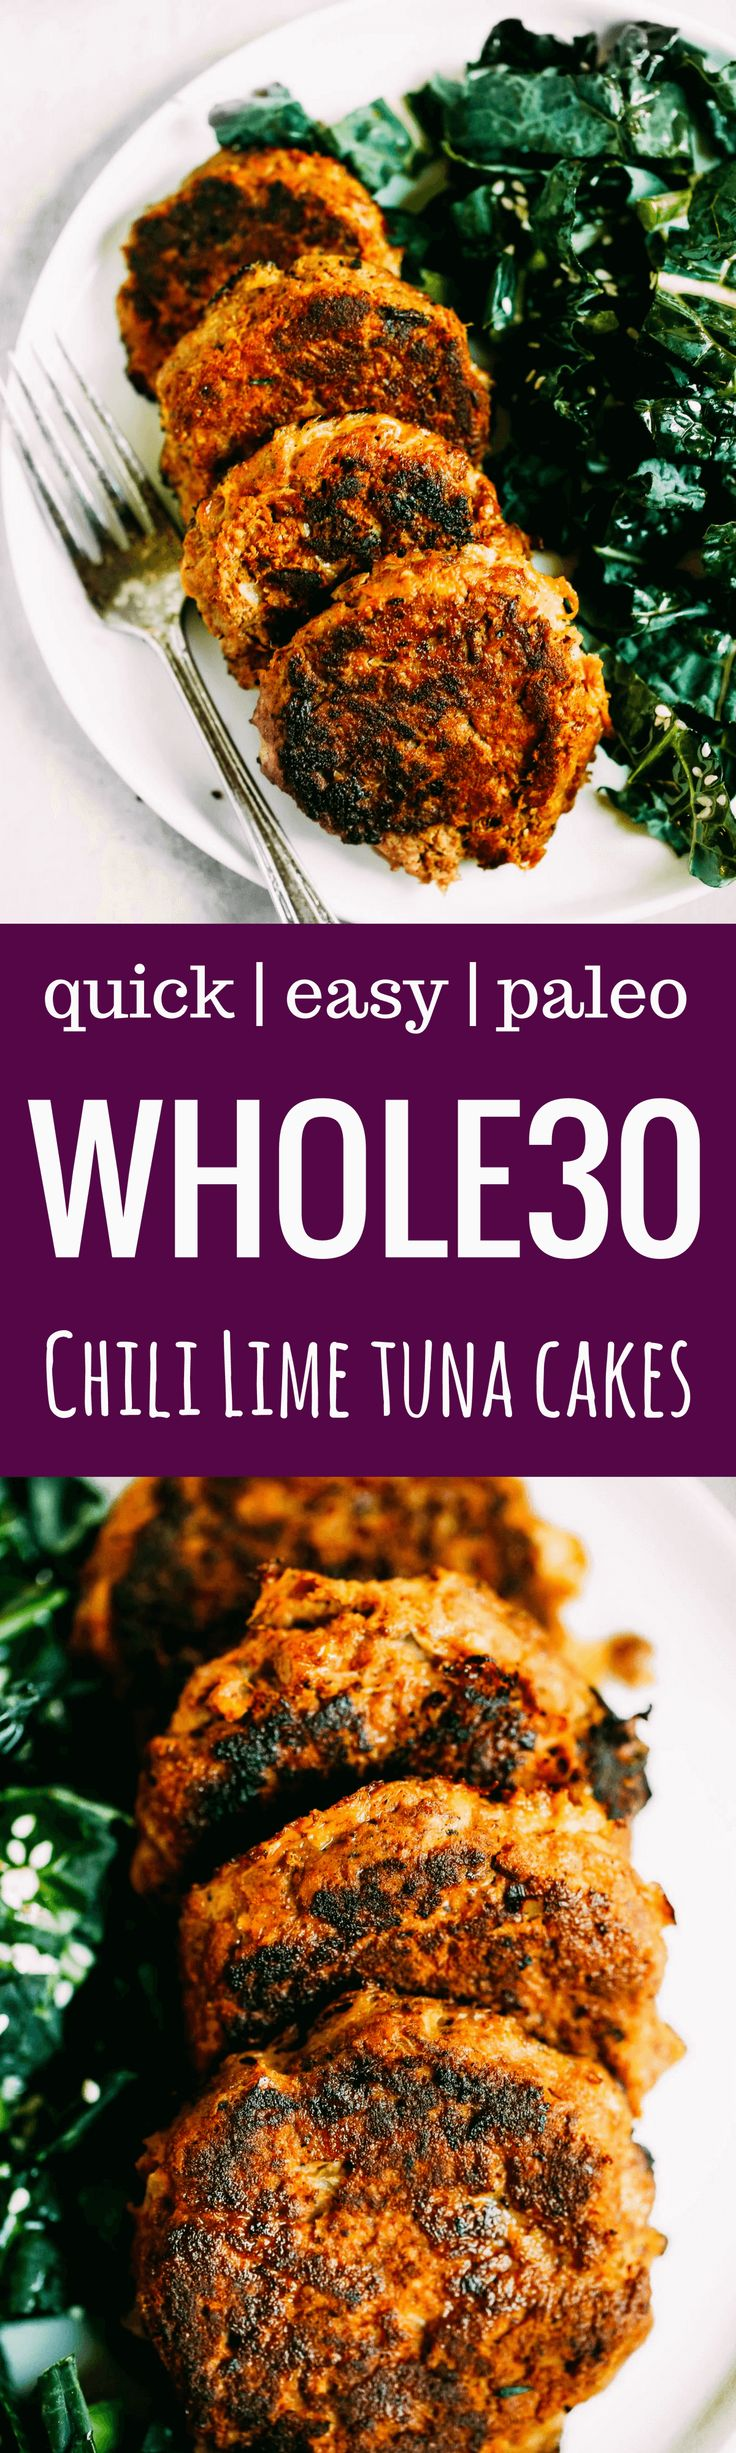 Must add to the menu this week! Healthy, whole30, and paleo friendly wild tuna cakes made with low mercury chili lime tuna.Easy Whole30 recipes. Best paleo shopping guide. Easy whole30 lunch recipes. Easy whole30 lunch ideas. Whole30 lunch recipes. Best w